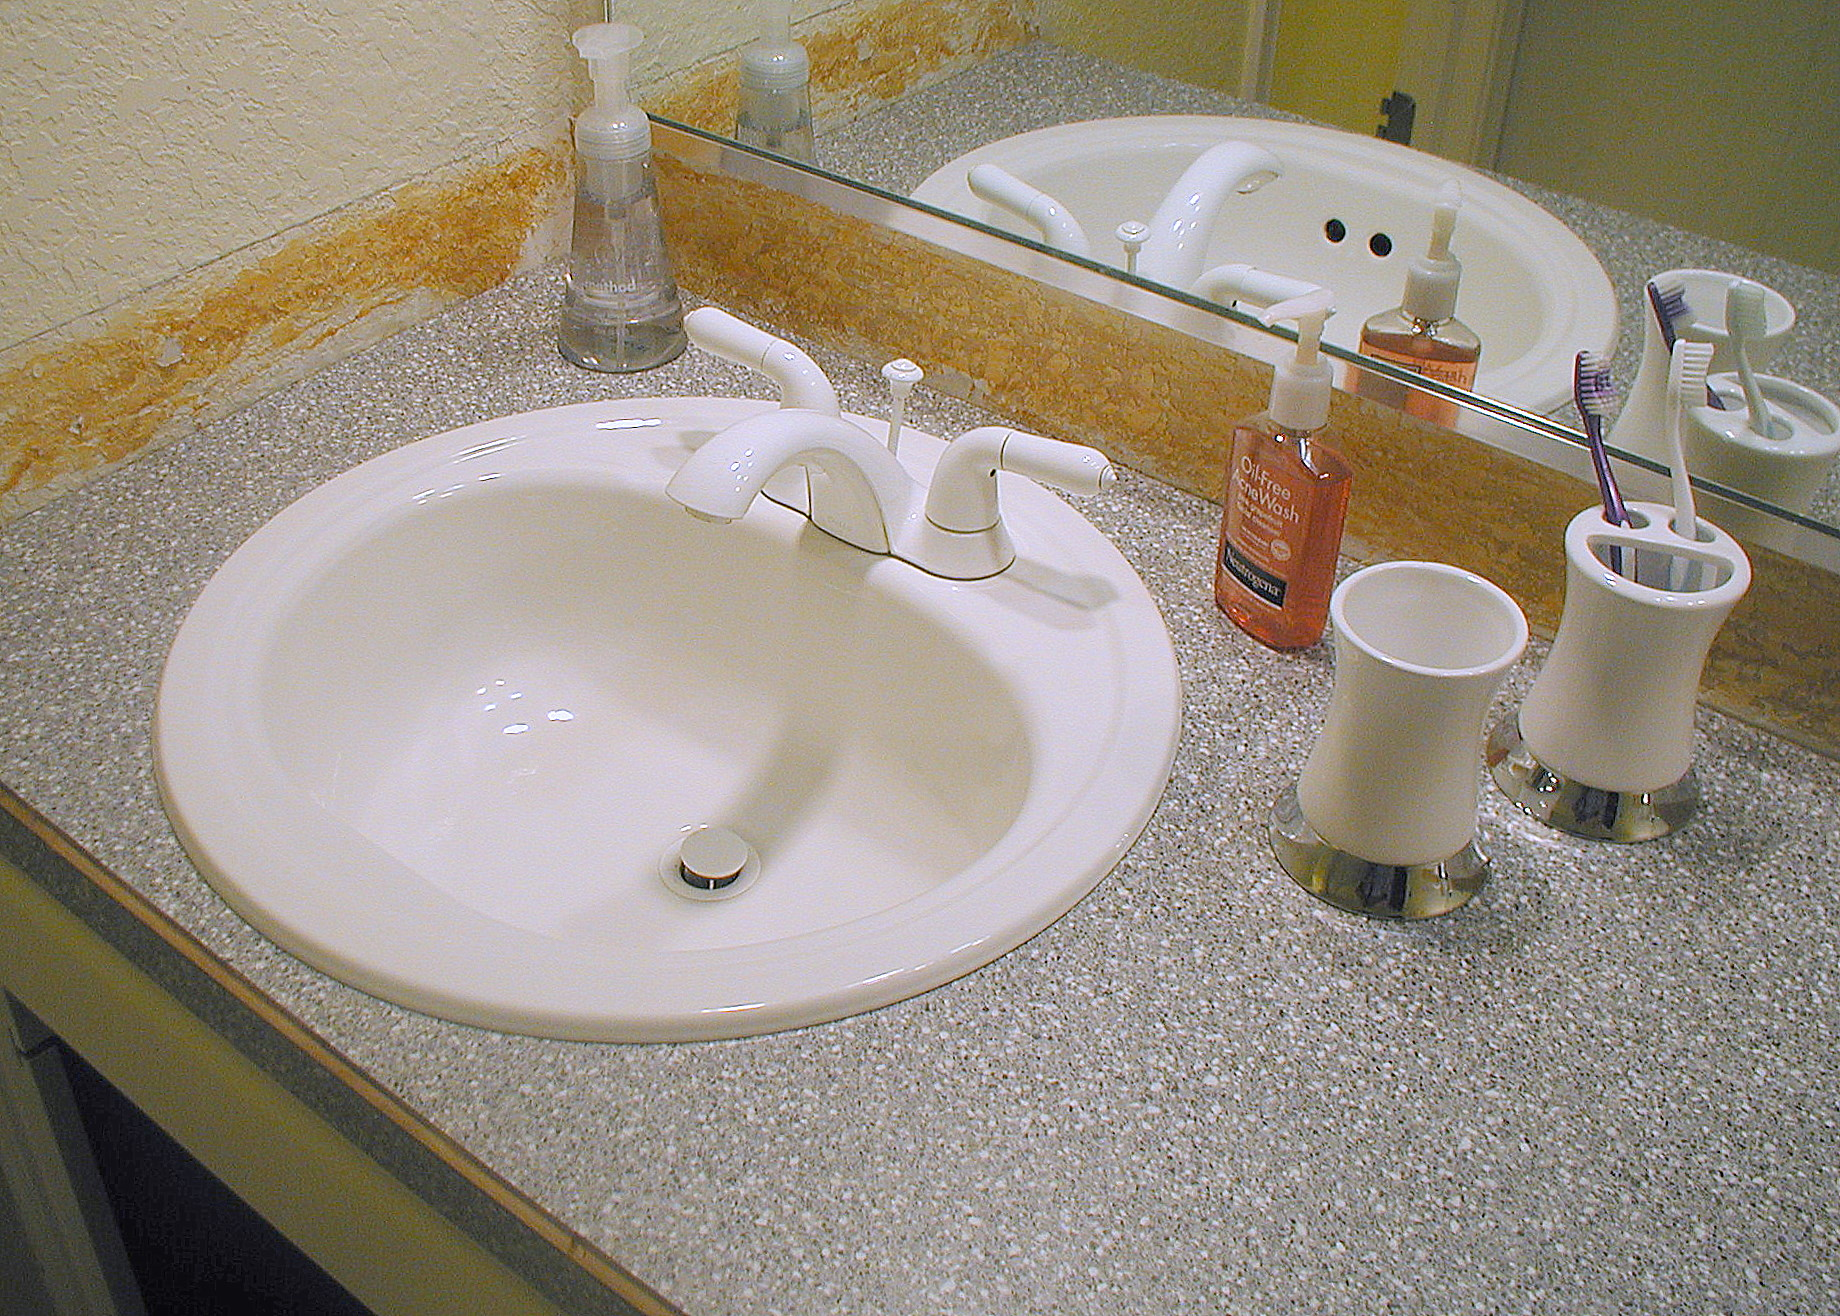 How To Build A Laminate Countertop Project Bathroom Vanity With Laminate Over Laminate